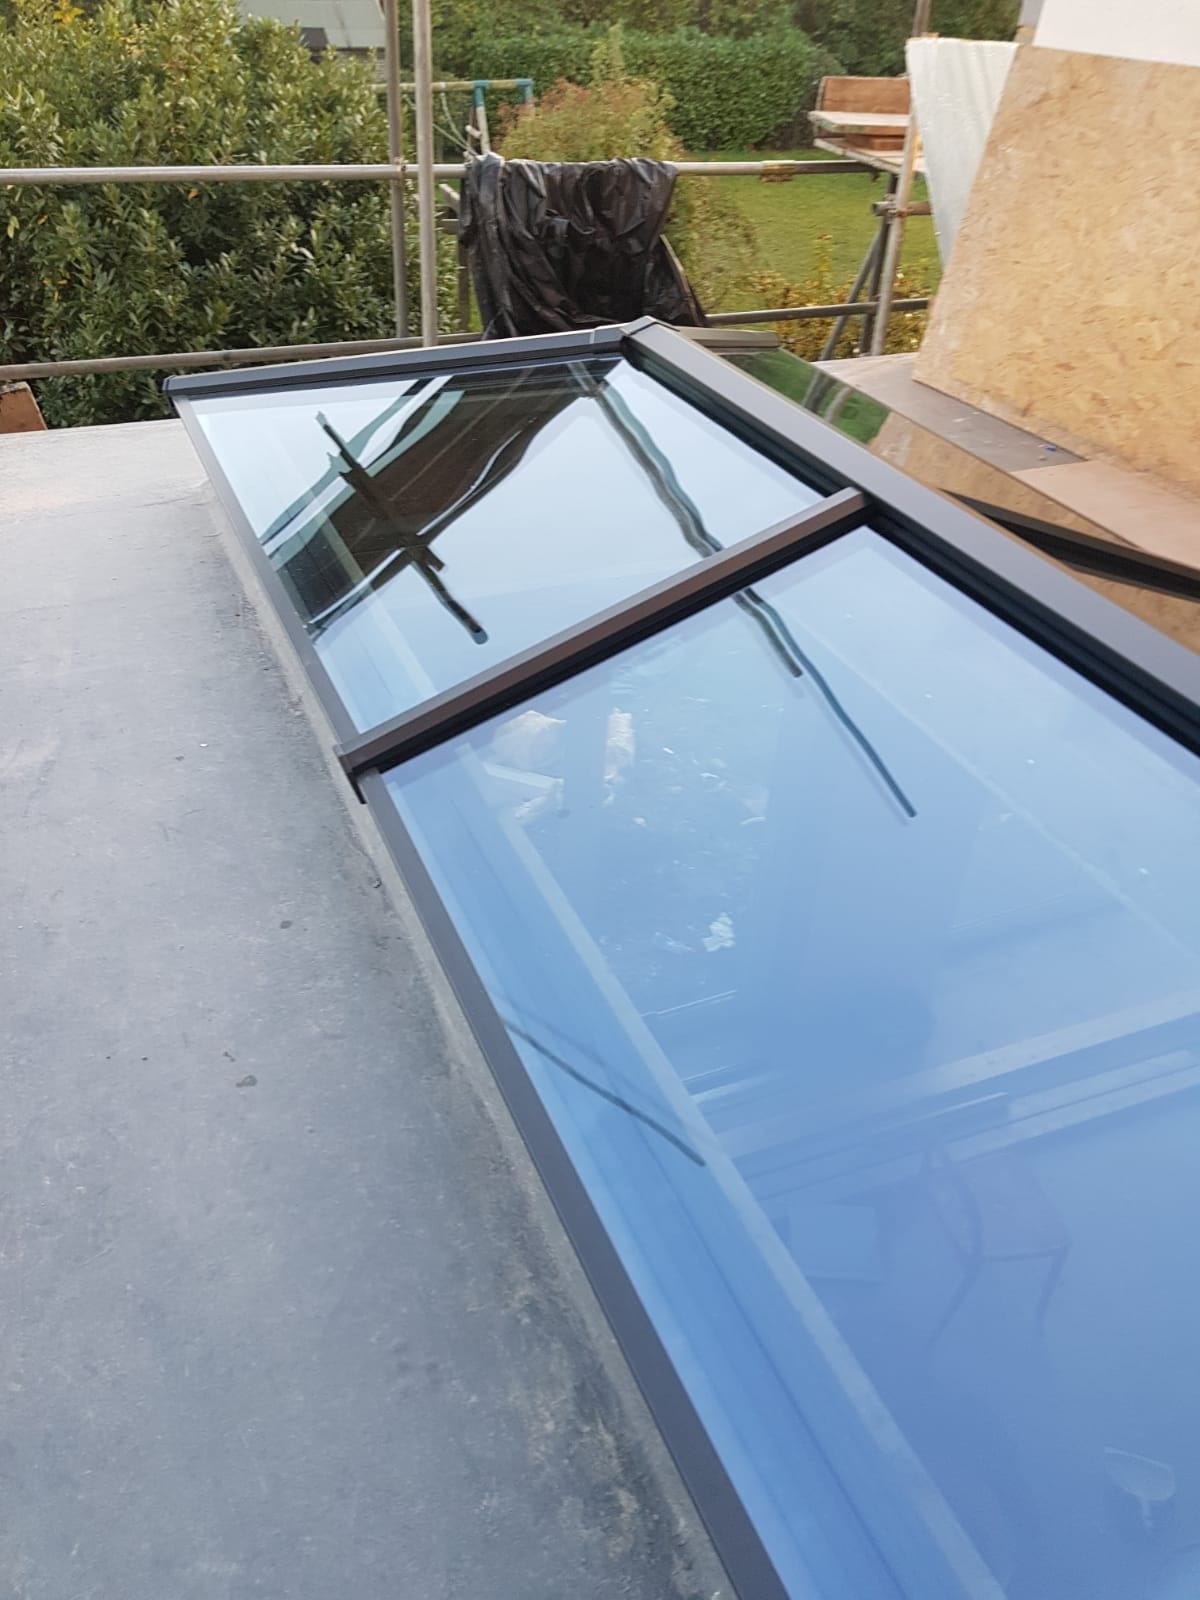 Roof lantern installation in a Kew home extension | Your Price Windows